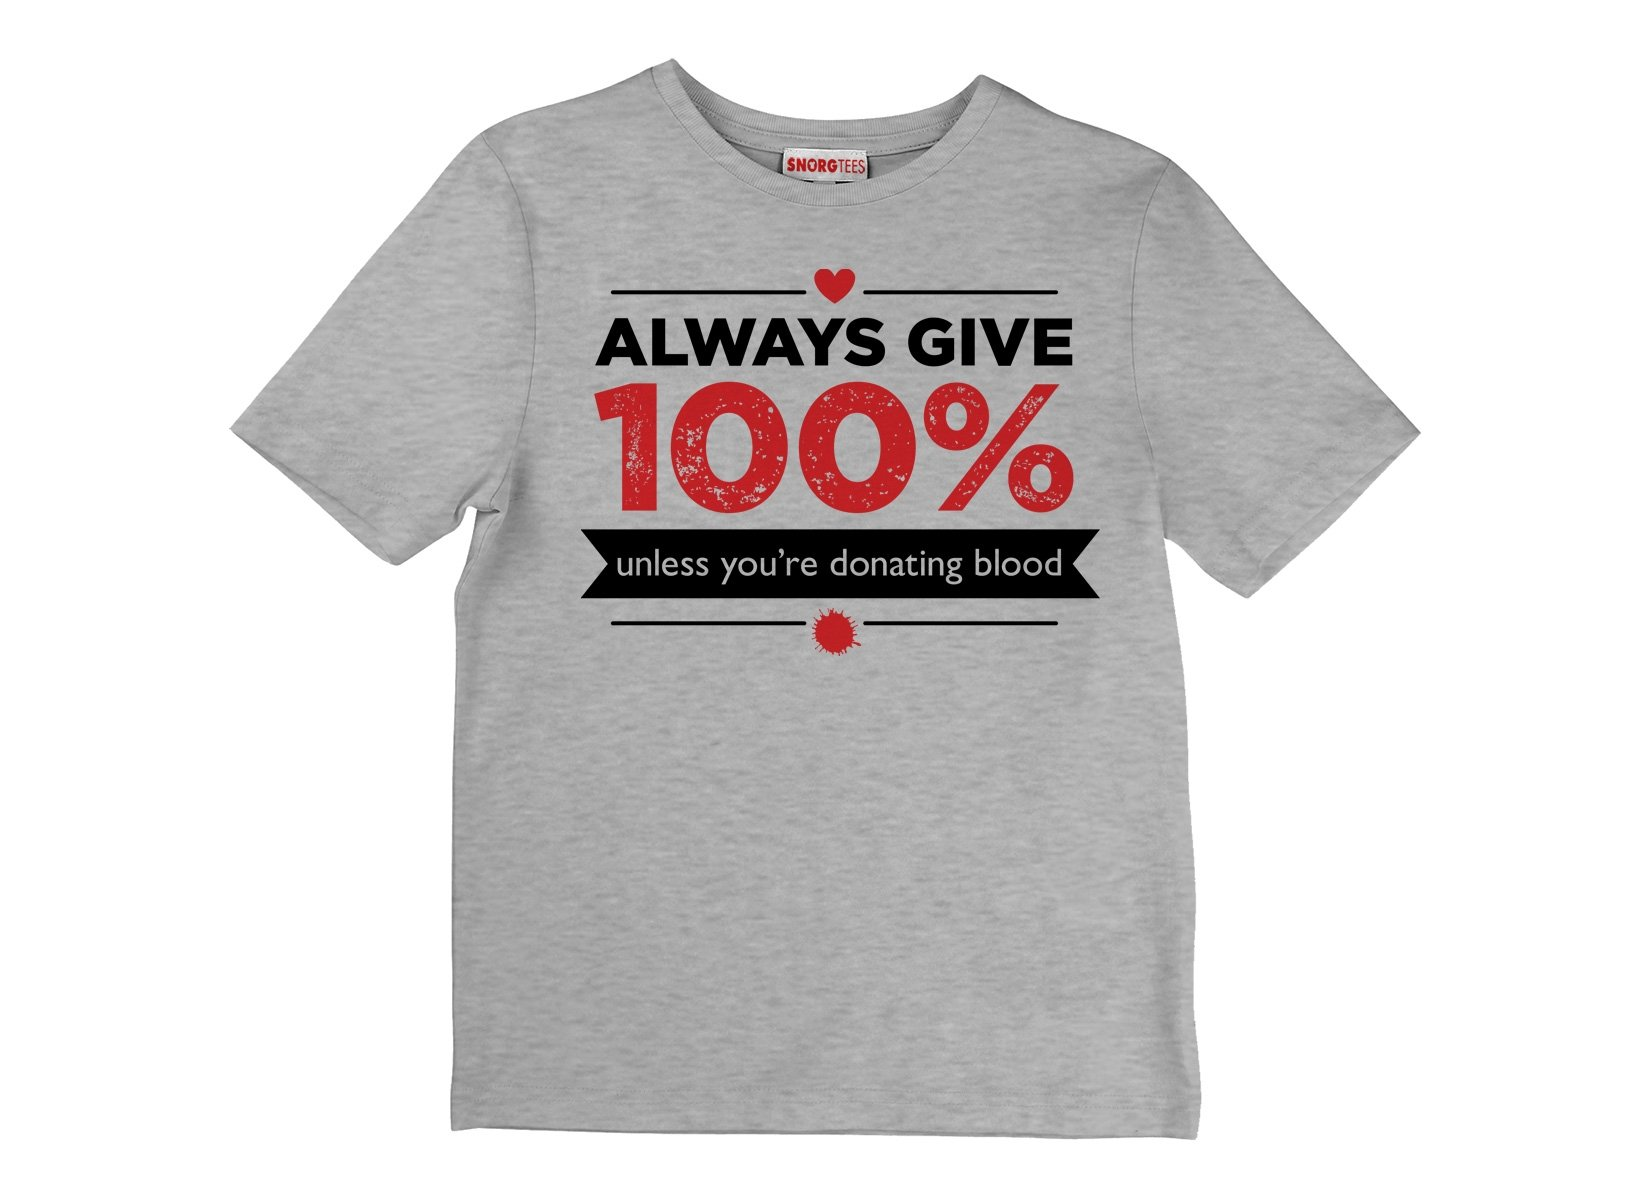 Always Give 100%, Unless You're Donating Blood on Kids T-Shirt